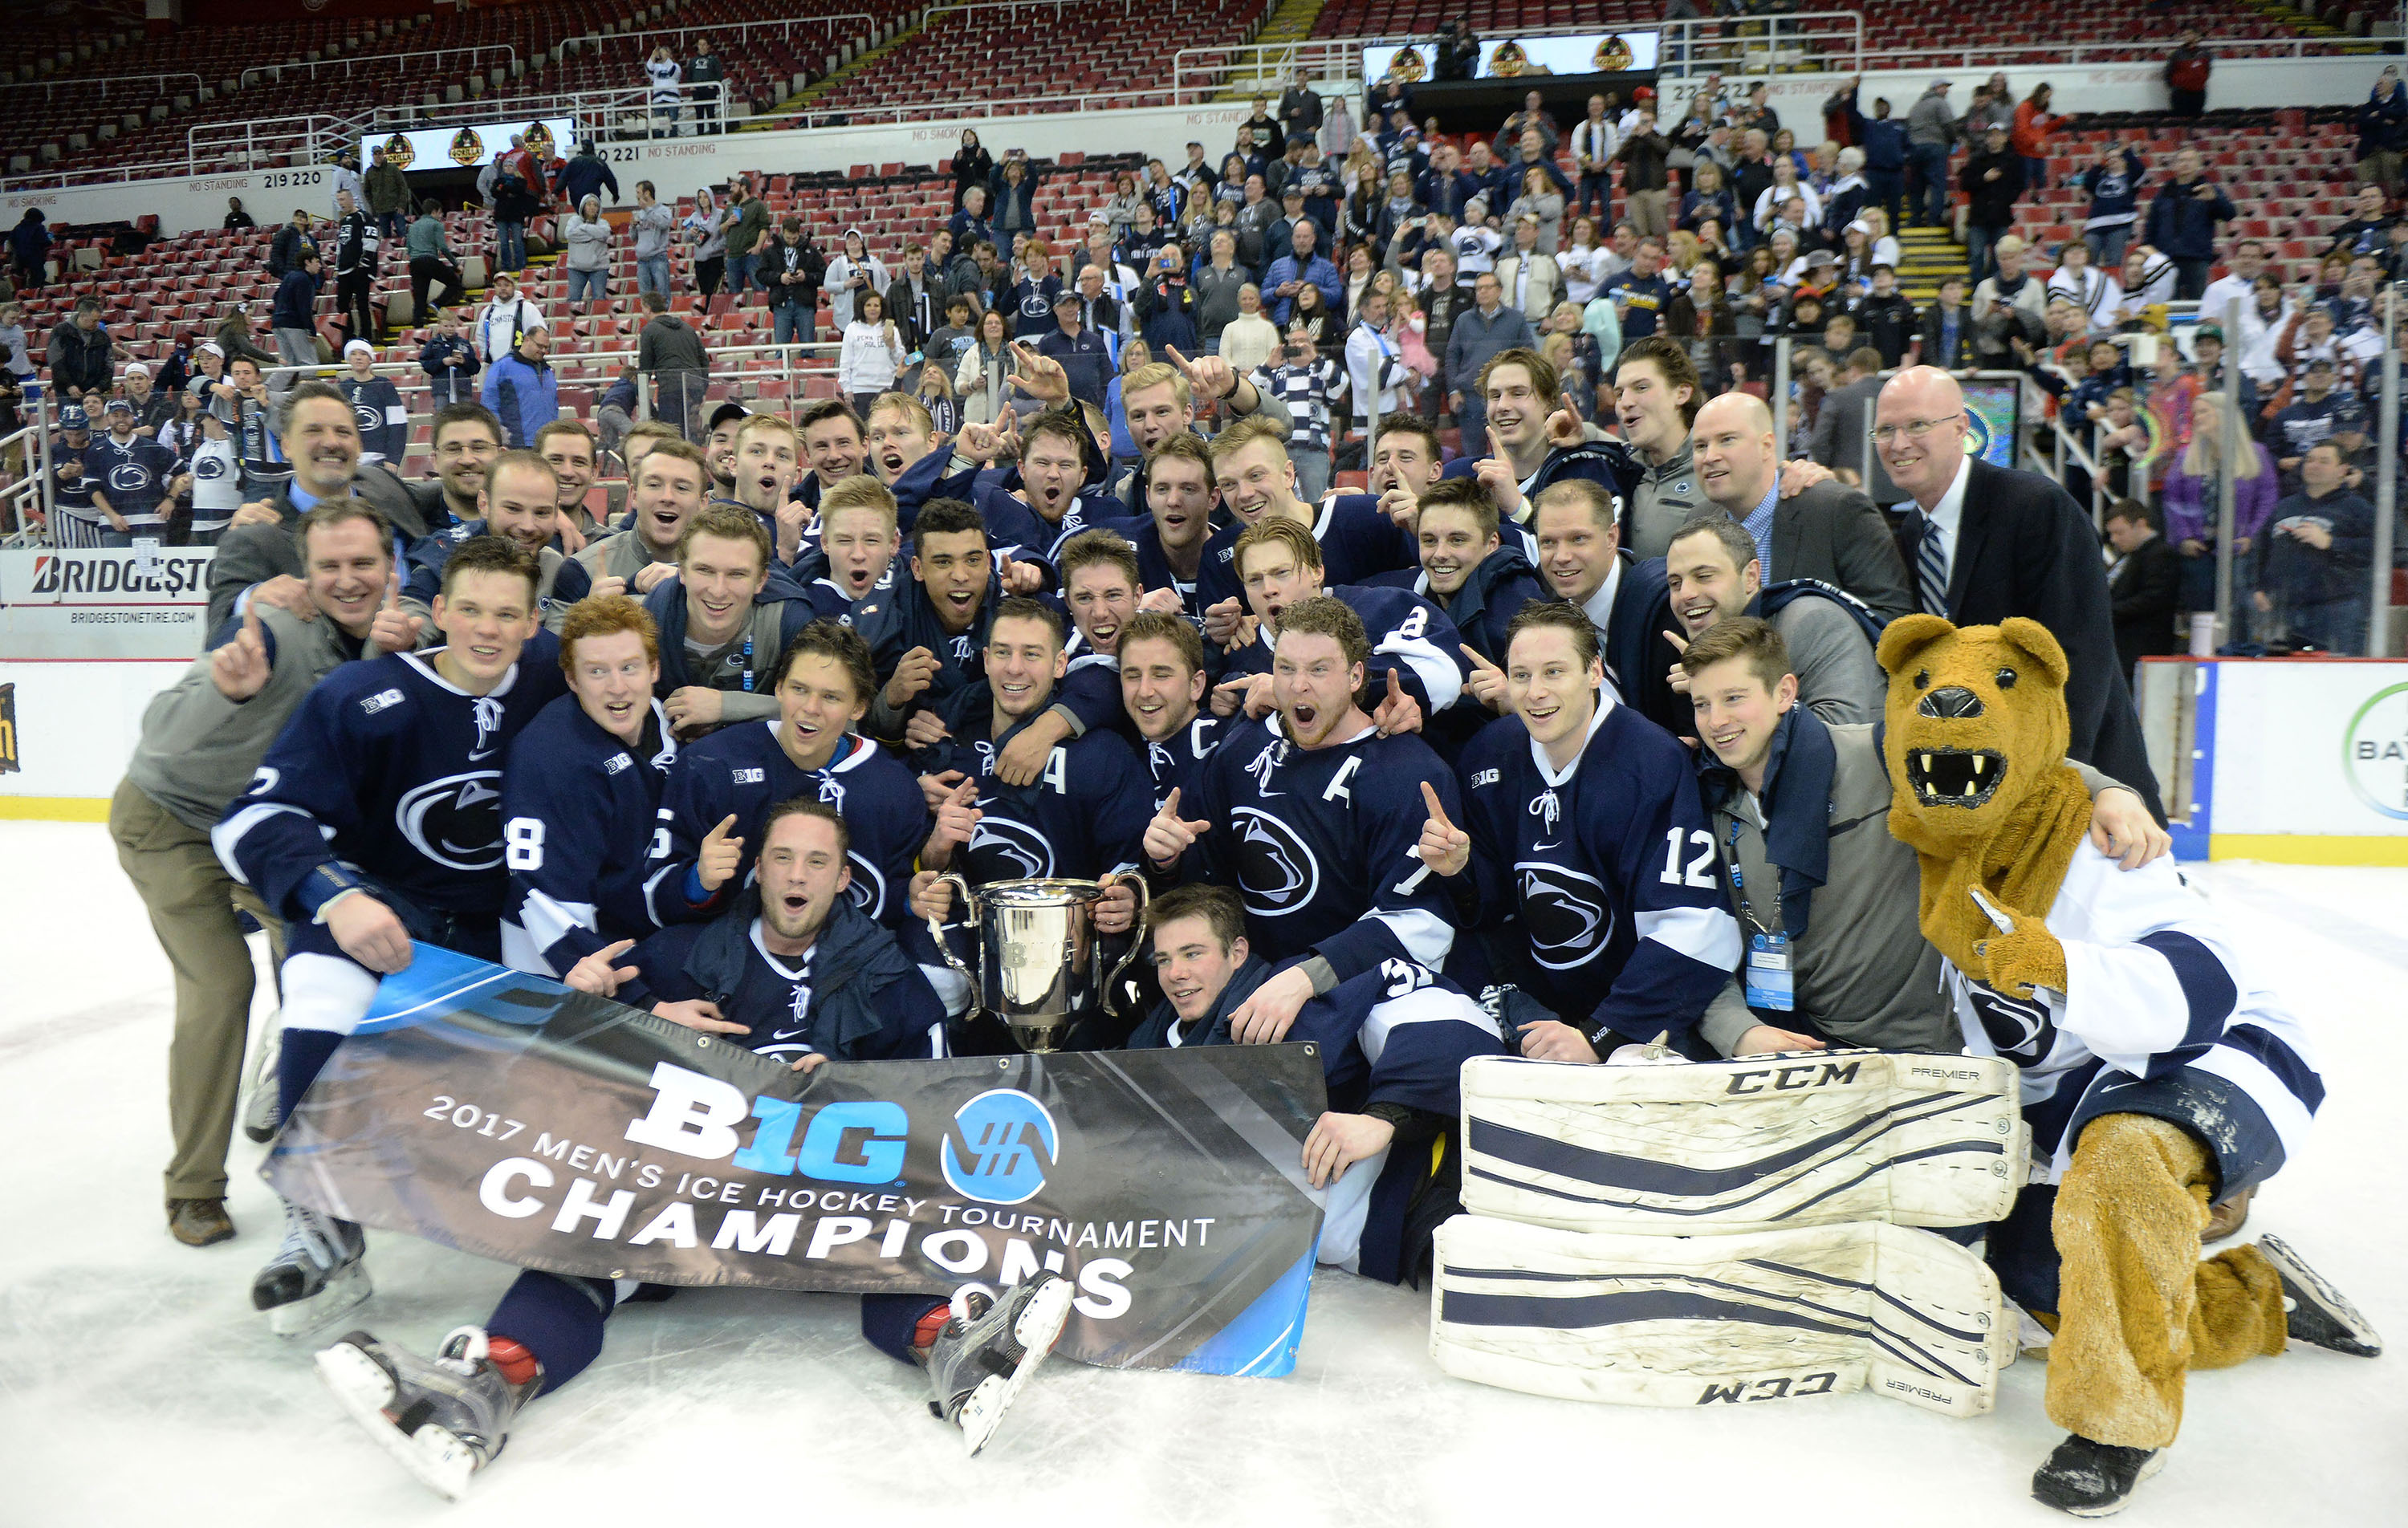 penn state mhky announces 2017-18 schedule - penn state university